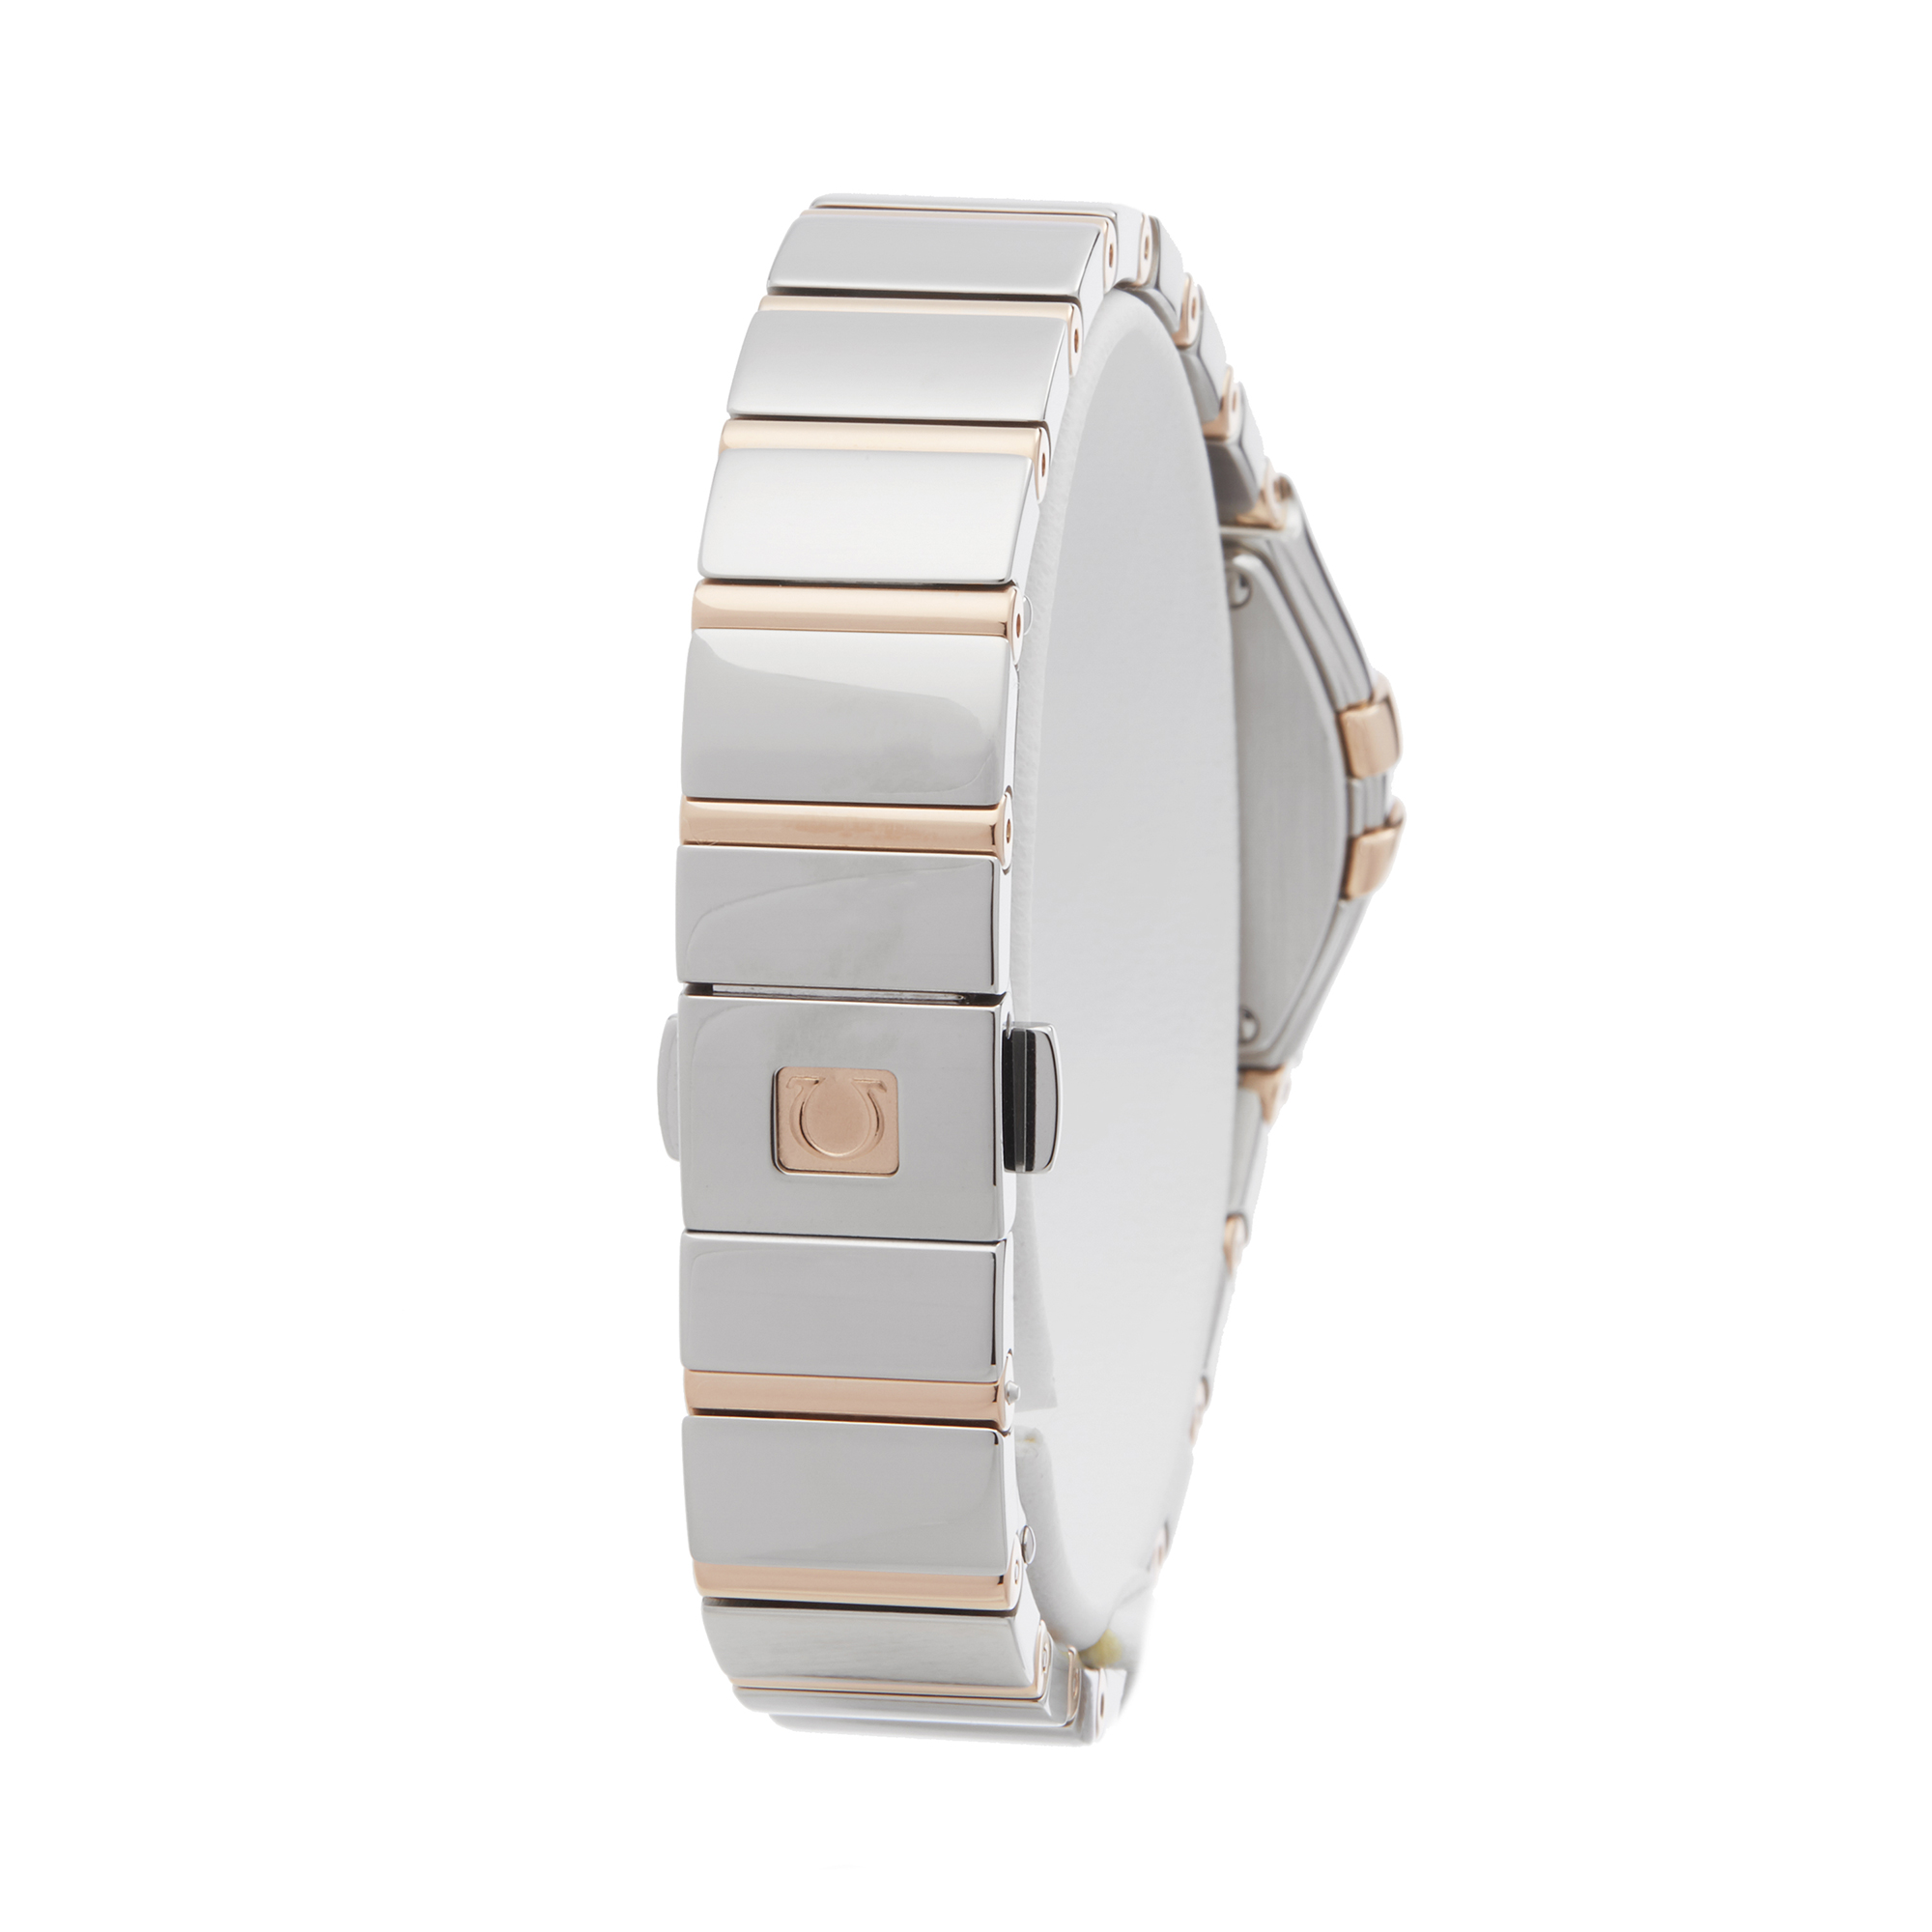 Omega Constellation 0 123.25.24.60.55.005 Ladies Stainless Steel & Rose Gold Diamond Mother Of Pearl - Image 4 of 7